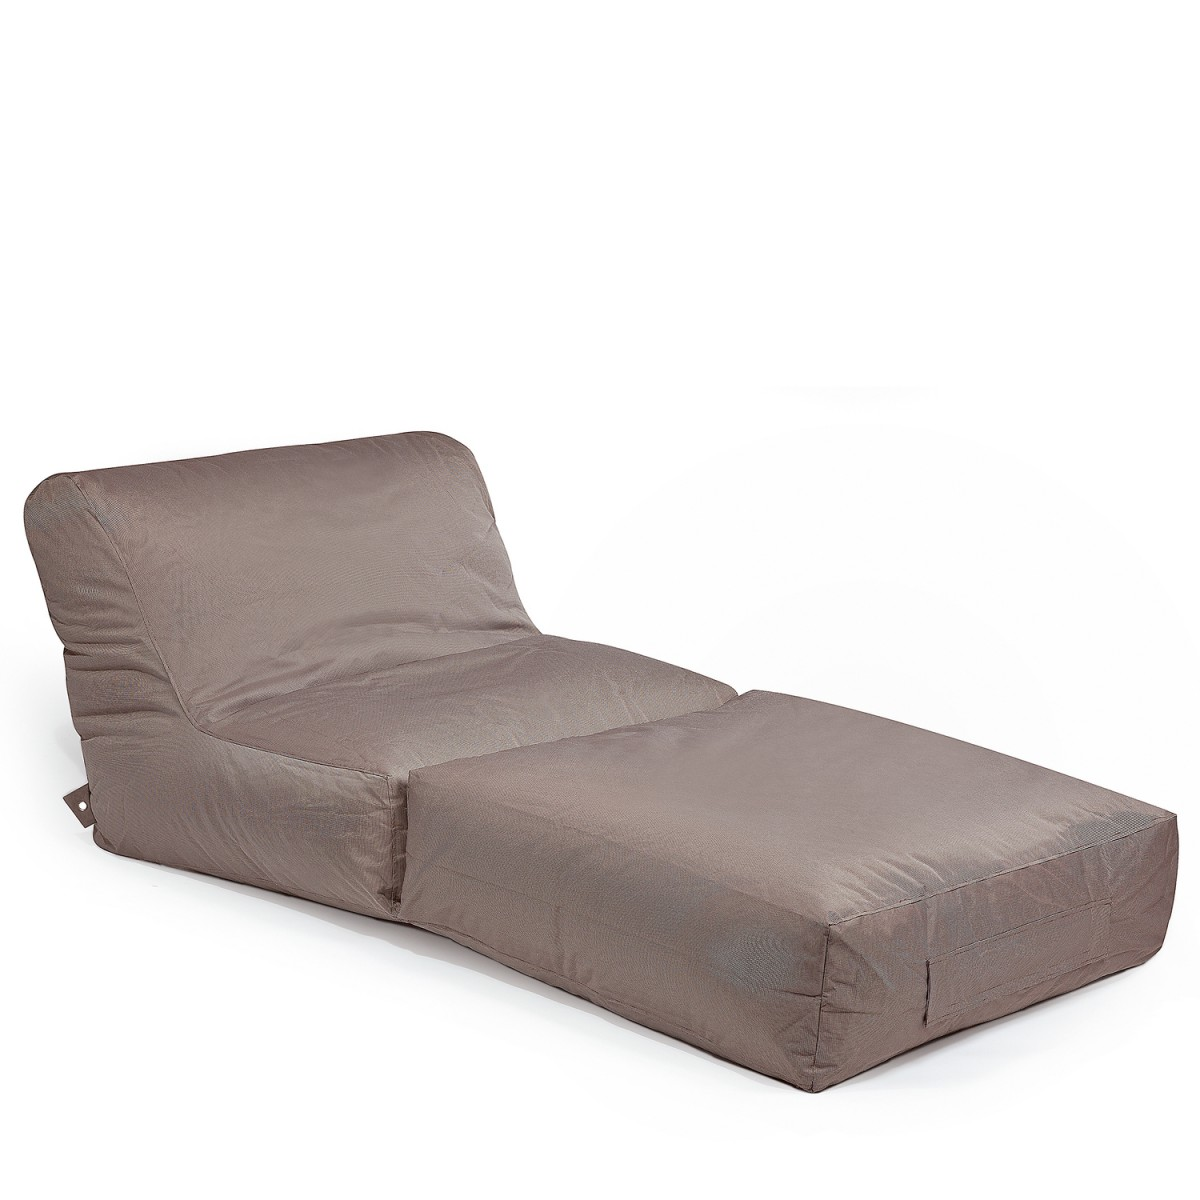 outbag peak outdoor wellness lounge garten couch sonnenliege wetterfest ebay. Black Bedroom Furniture Sets. Home Design Ideas